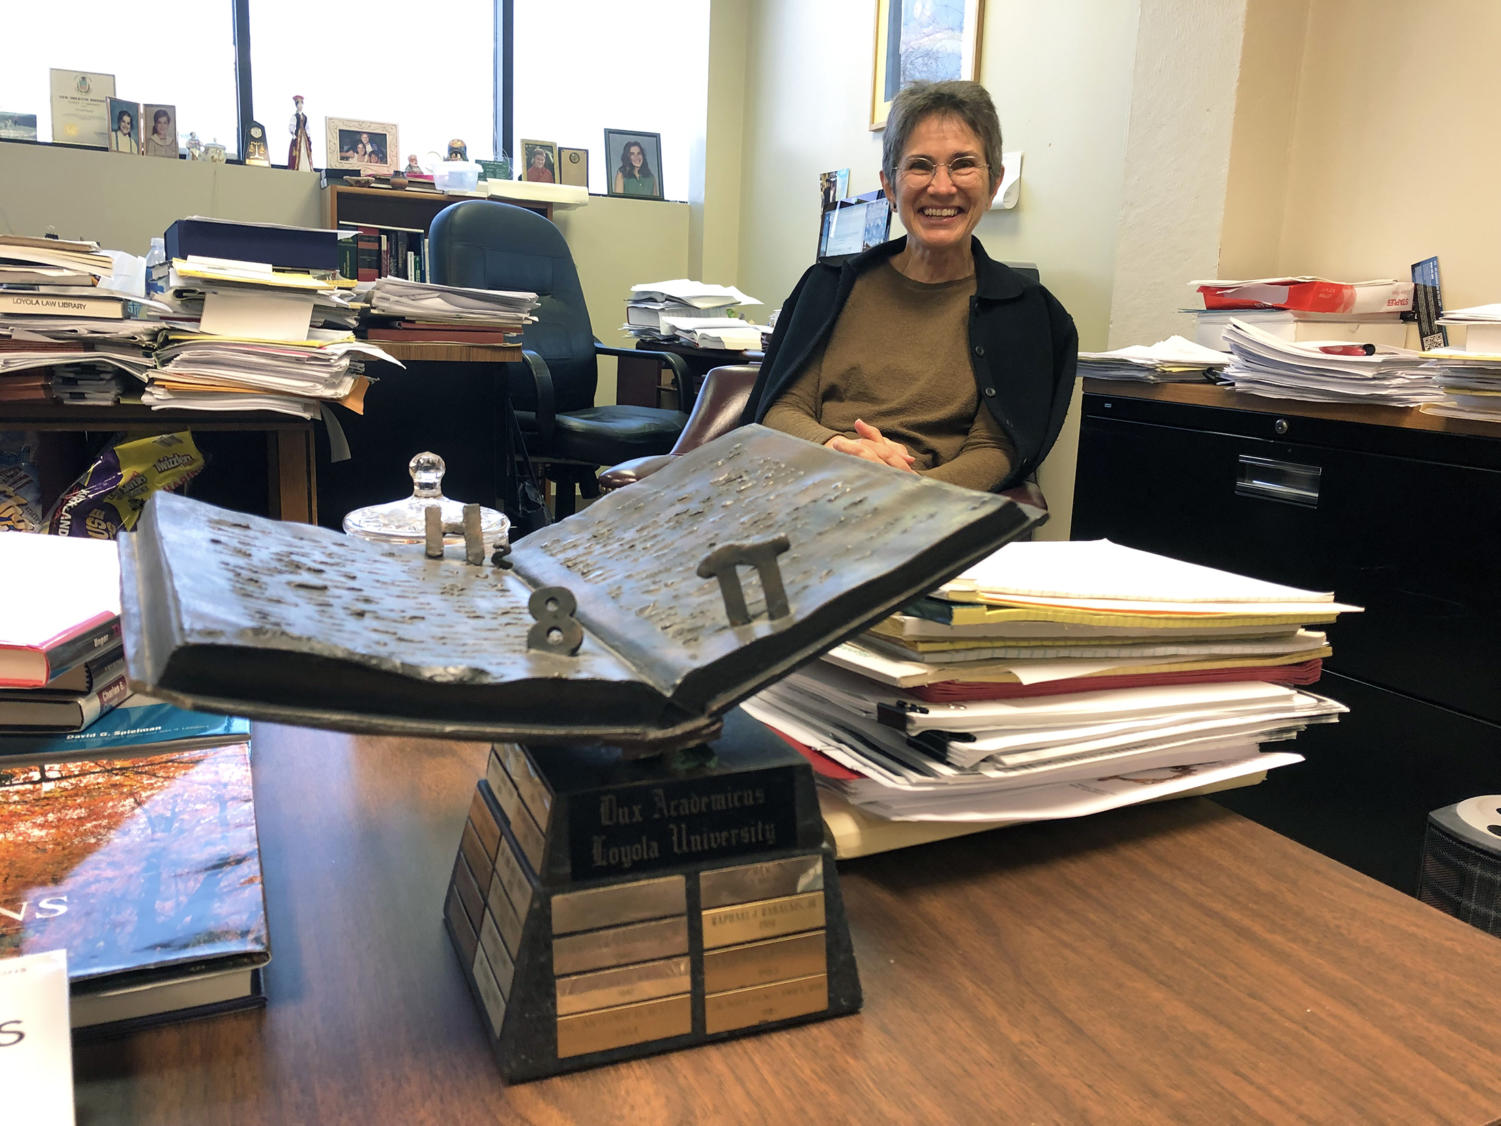 Isabel Medina, law professor, sits in her office surrounded by her work and the Dux Academicus award Feb. . The annual award recognizes a Loyola faculty member for their superior scholarship and teaching. Photo credit: Erin Snodgrass